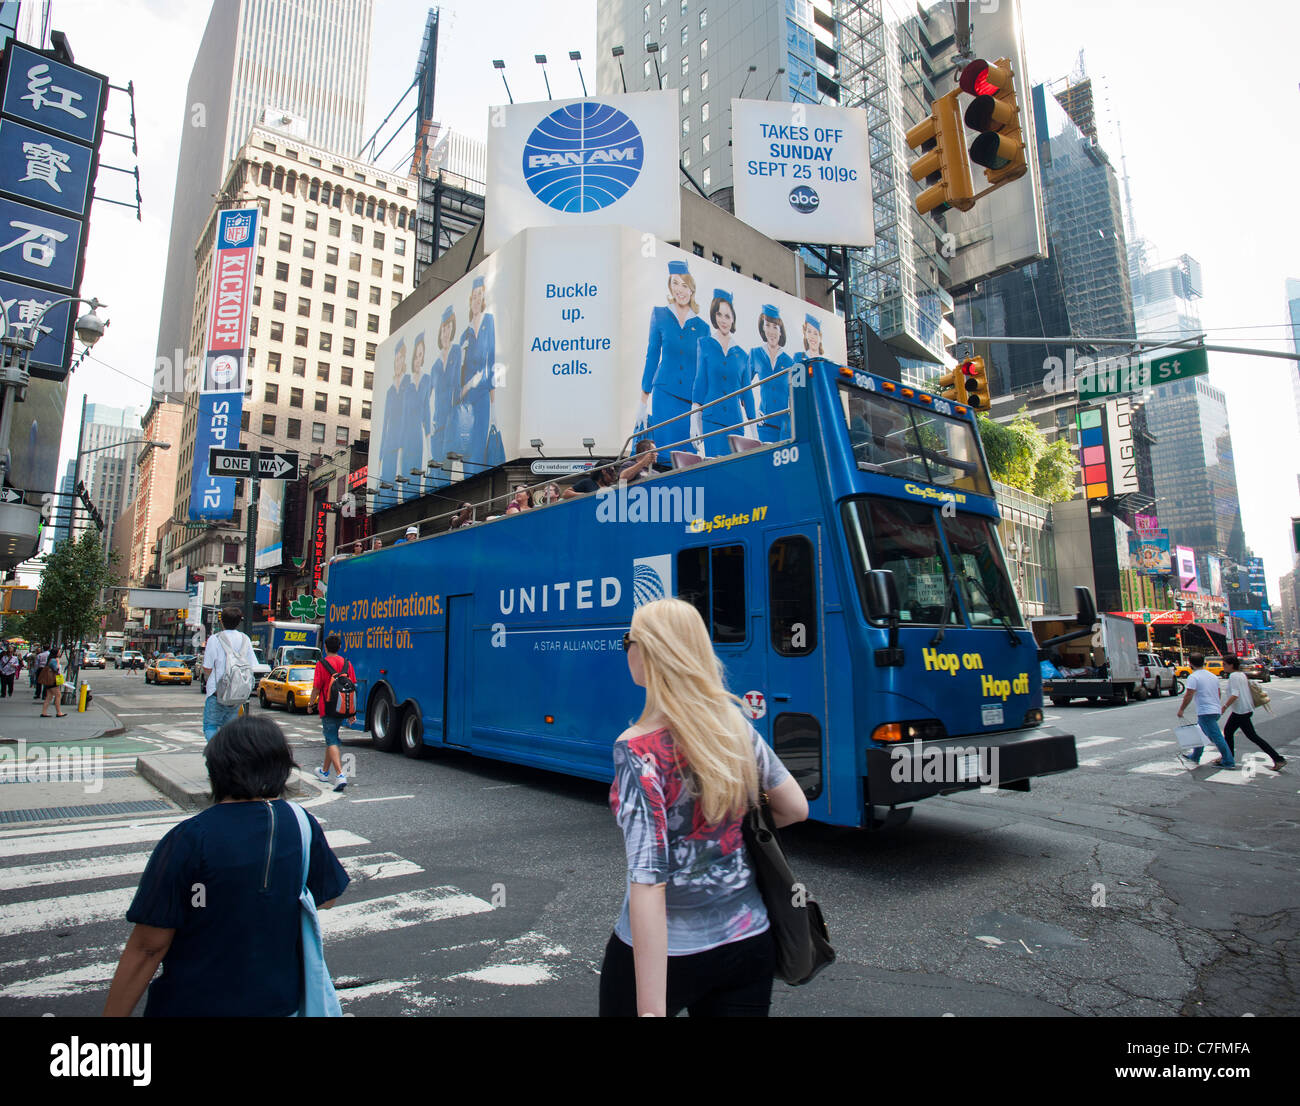 Advertising on billboards in Times Square in New York for the ABC television program, 'Pan Am' - Stock Image